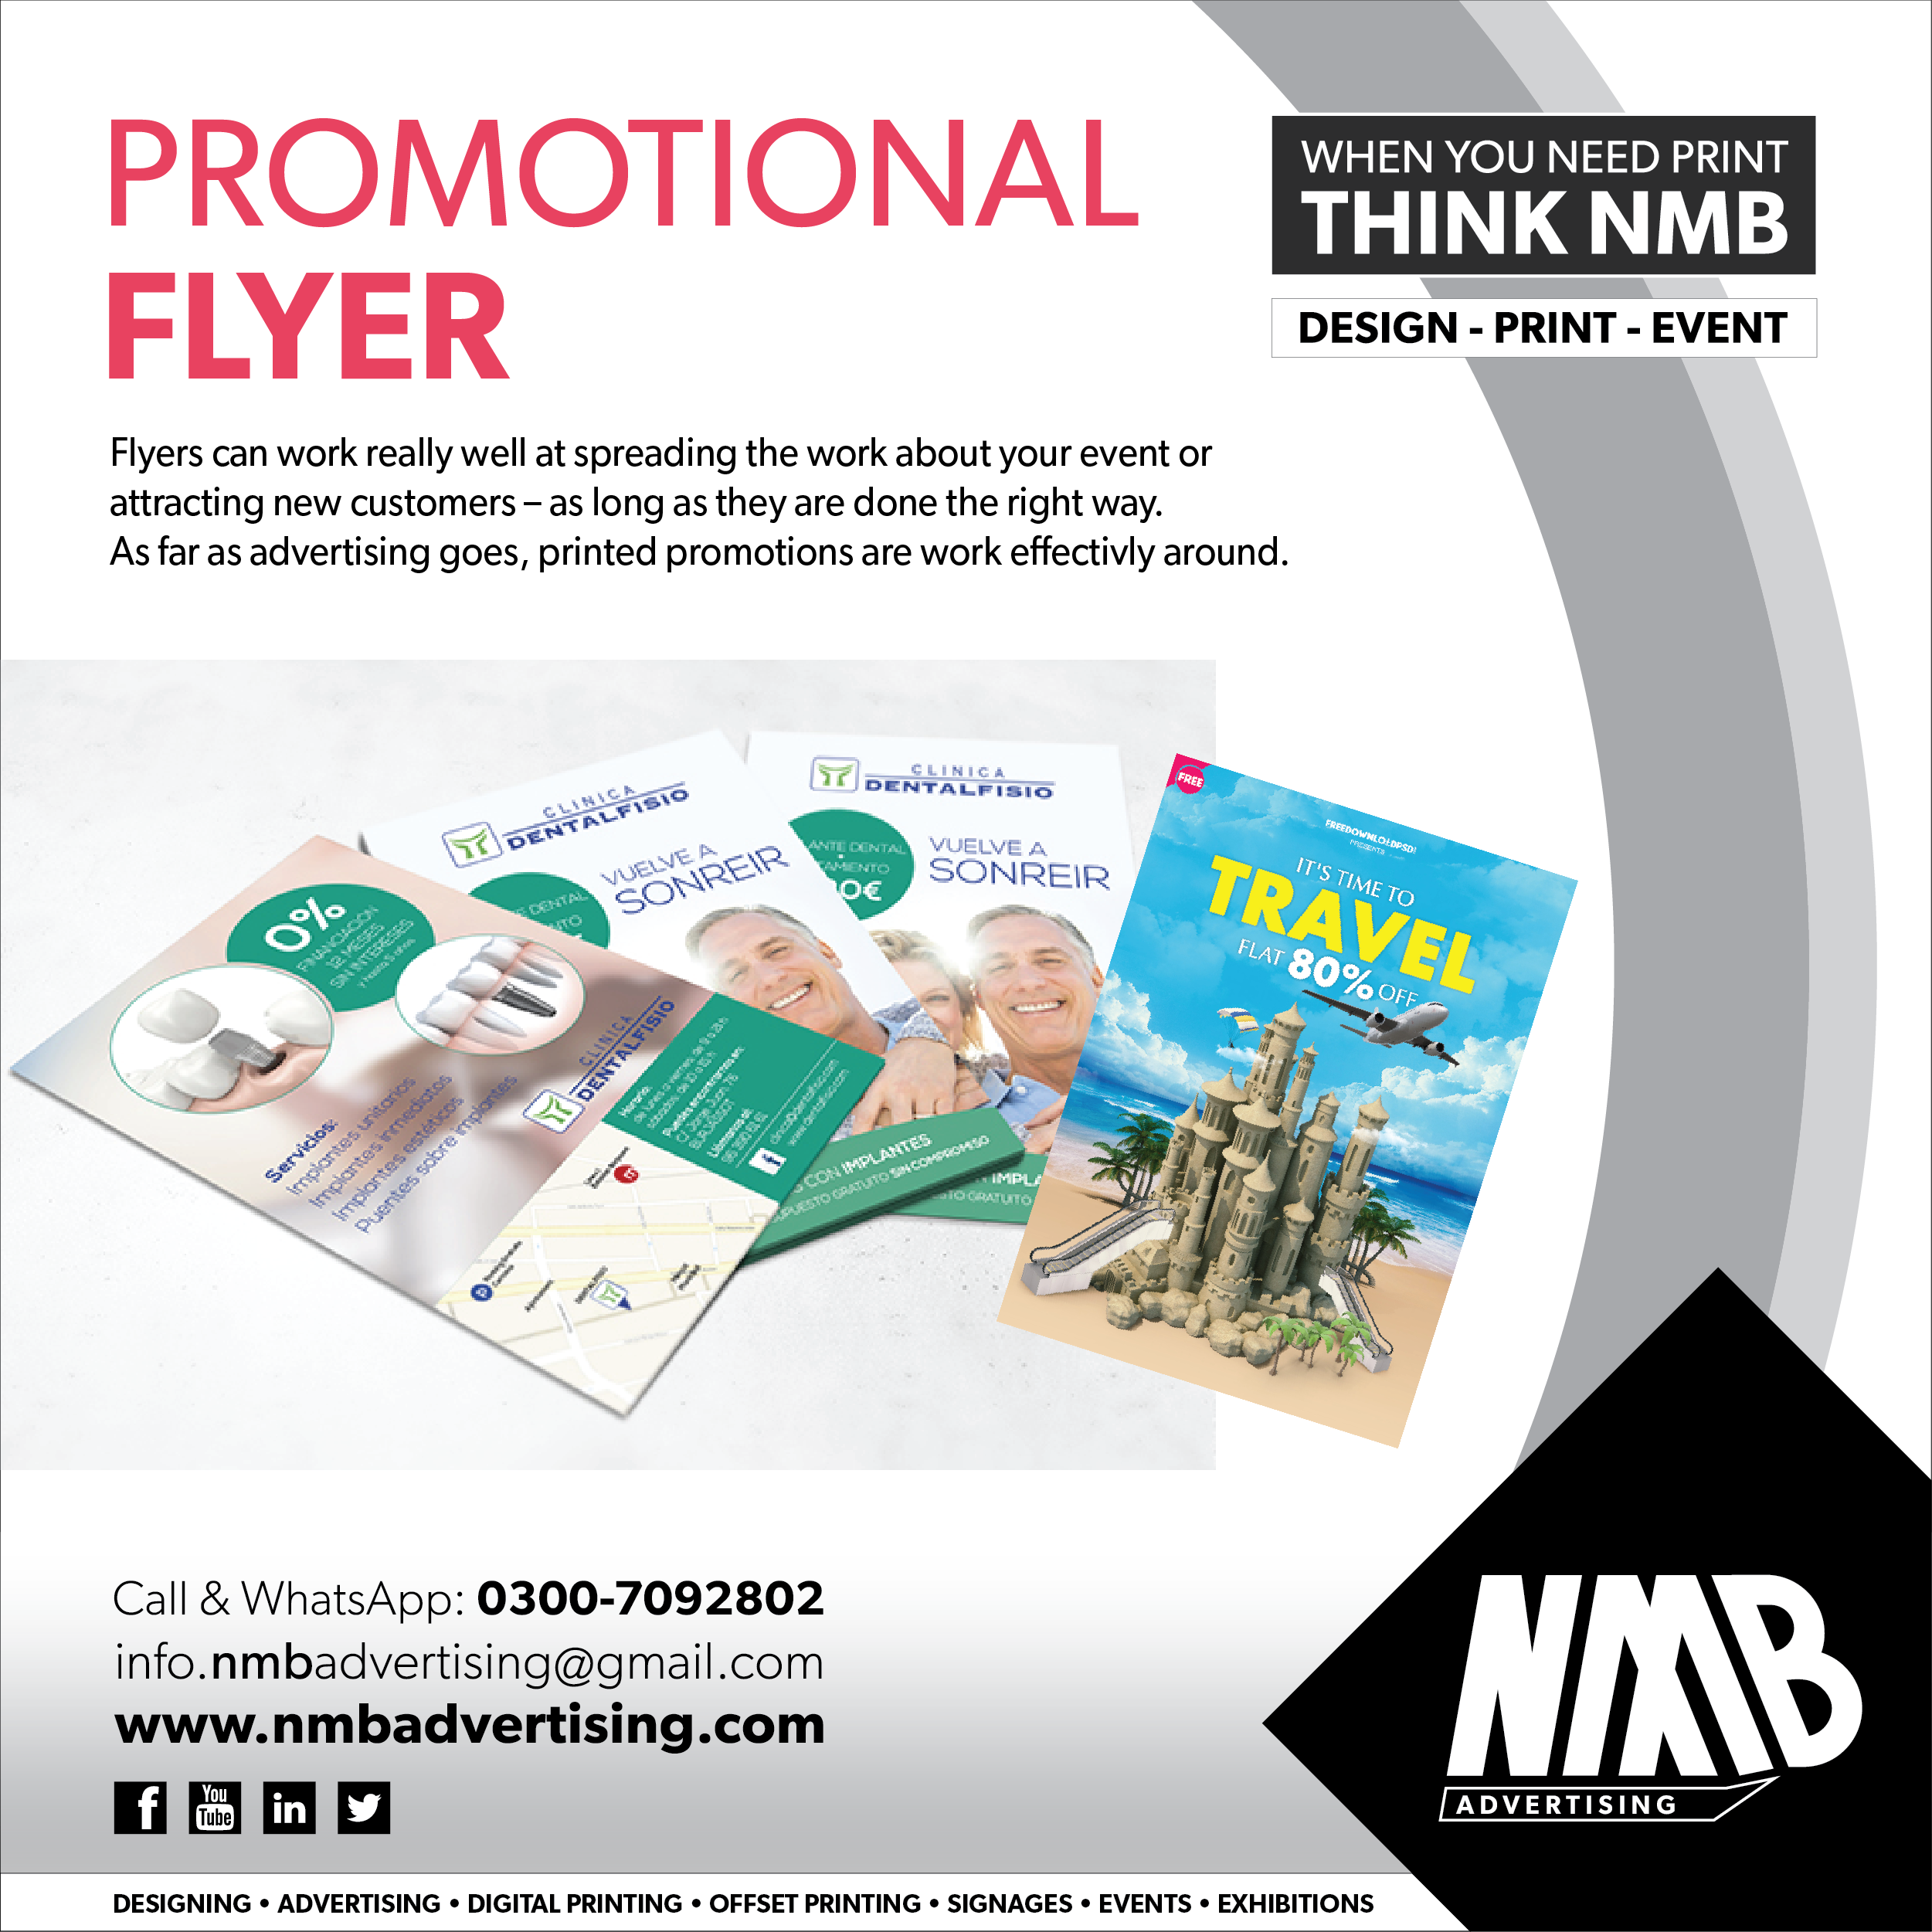 Promotional Flyer Digital Printing Services Promotional Flyers Event Flyers